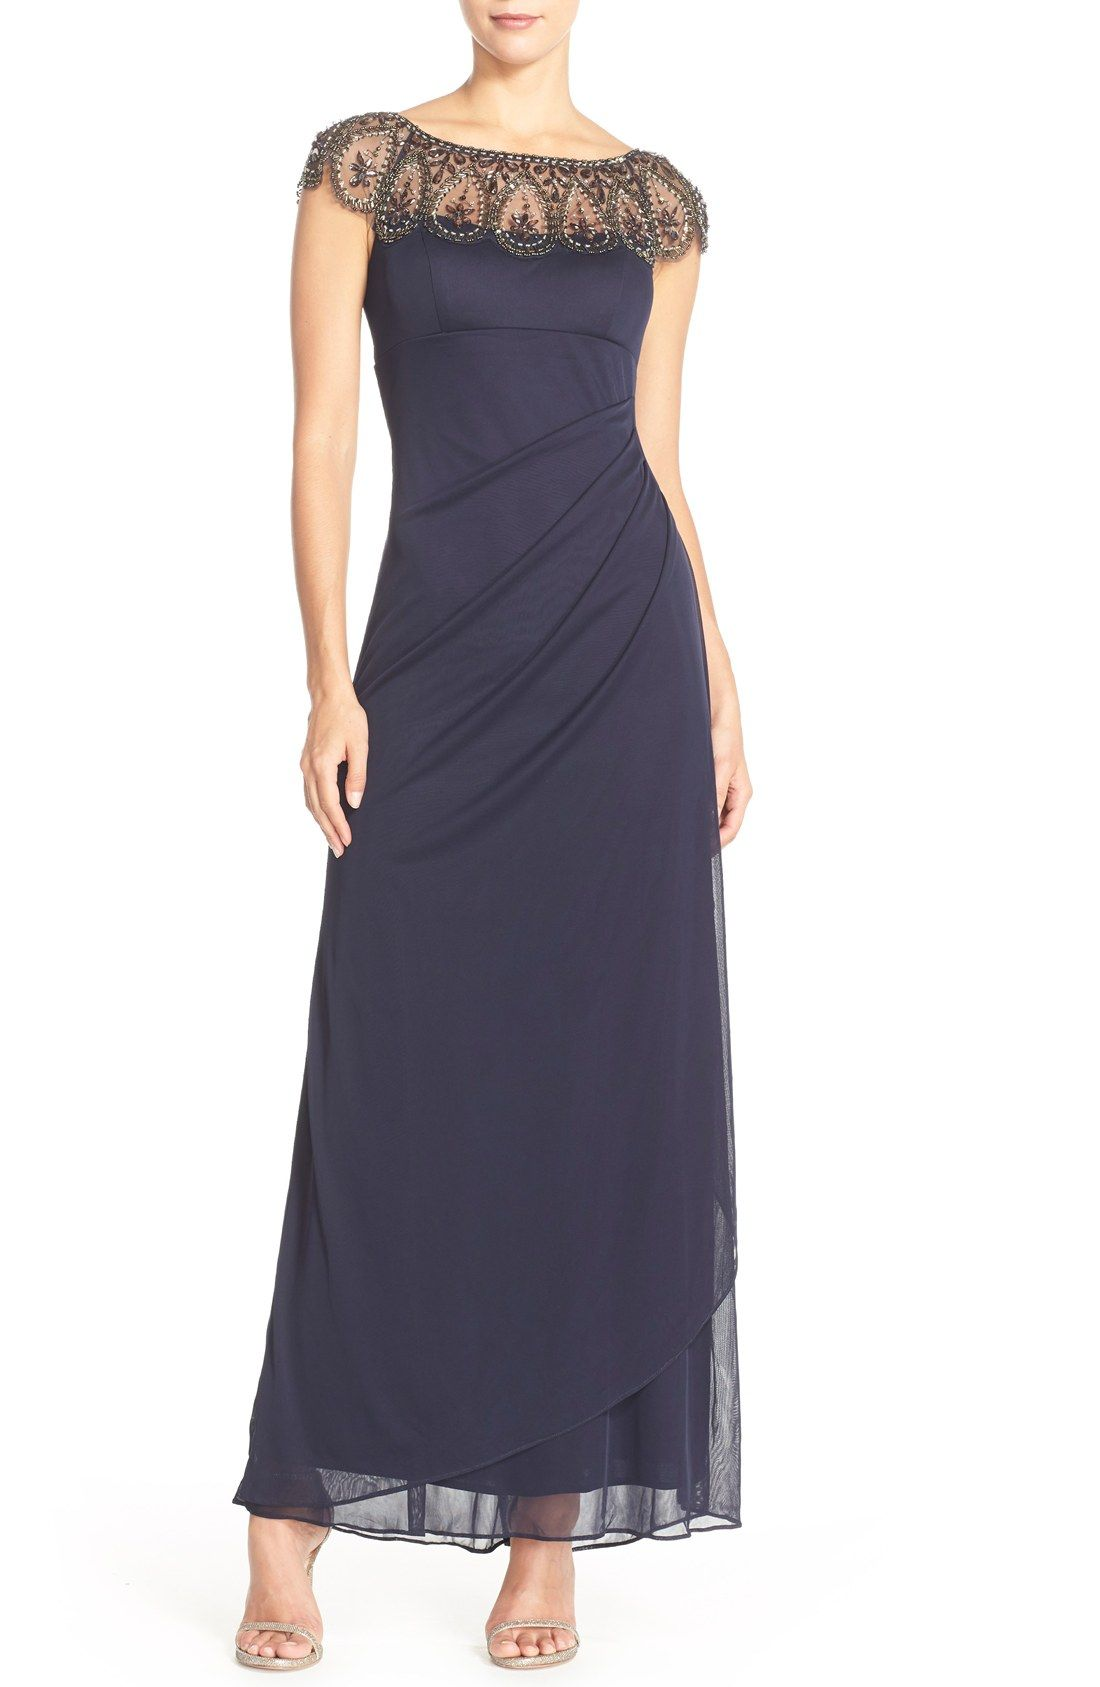 Nordstrom $208 -- Xscape Embellished Illusion Ruched Jersey Gown ...